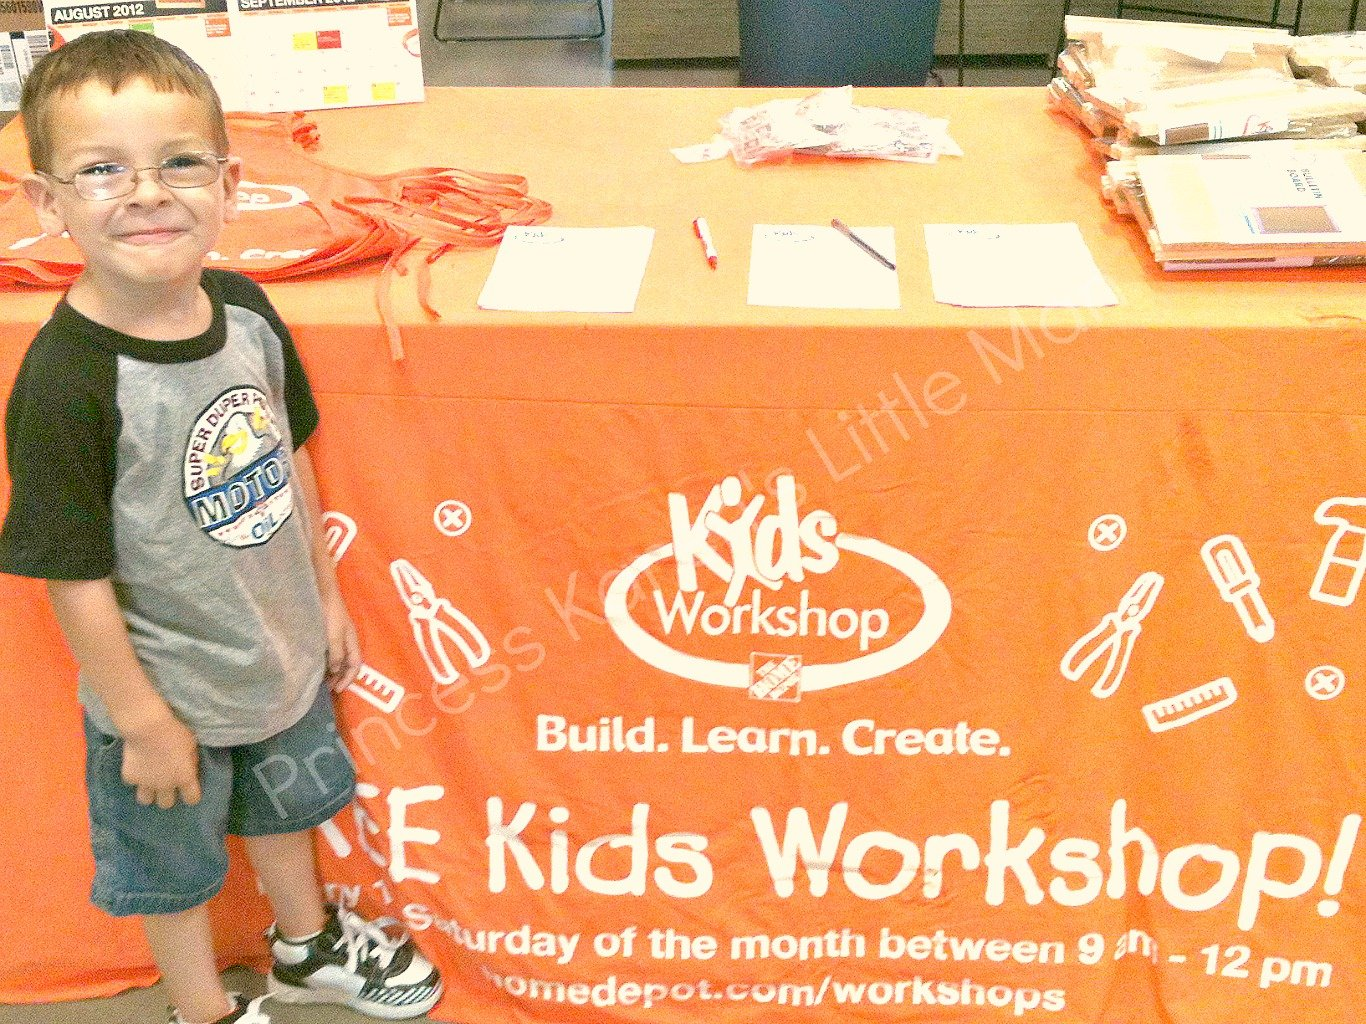 Home depot free kid 39 s workshop this saturday for Kids crafts at home depot